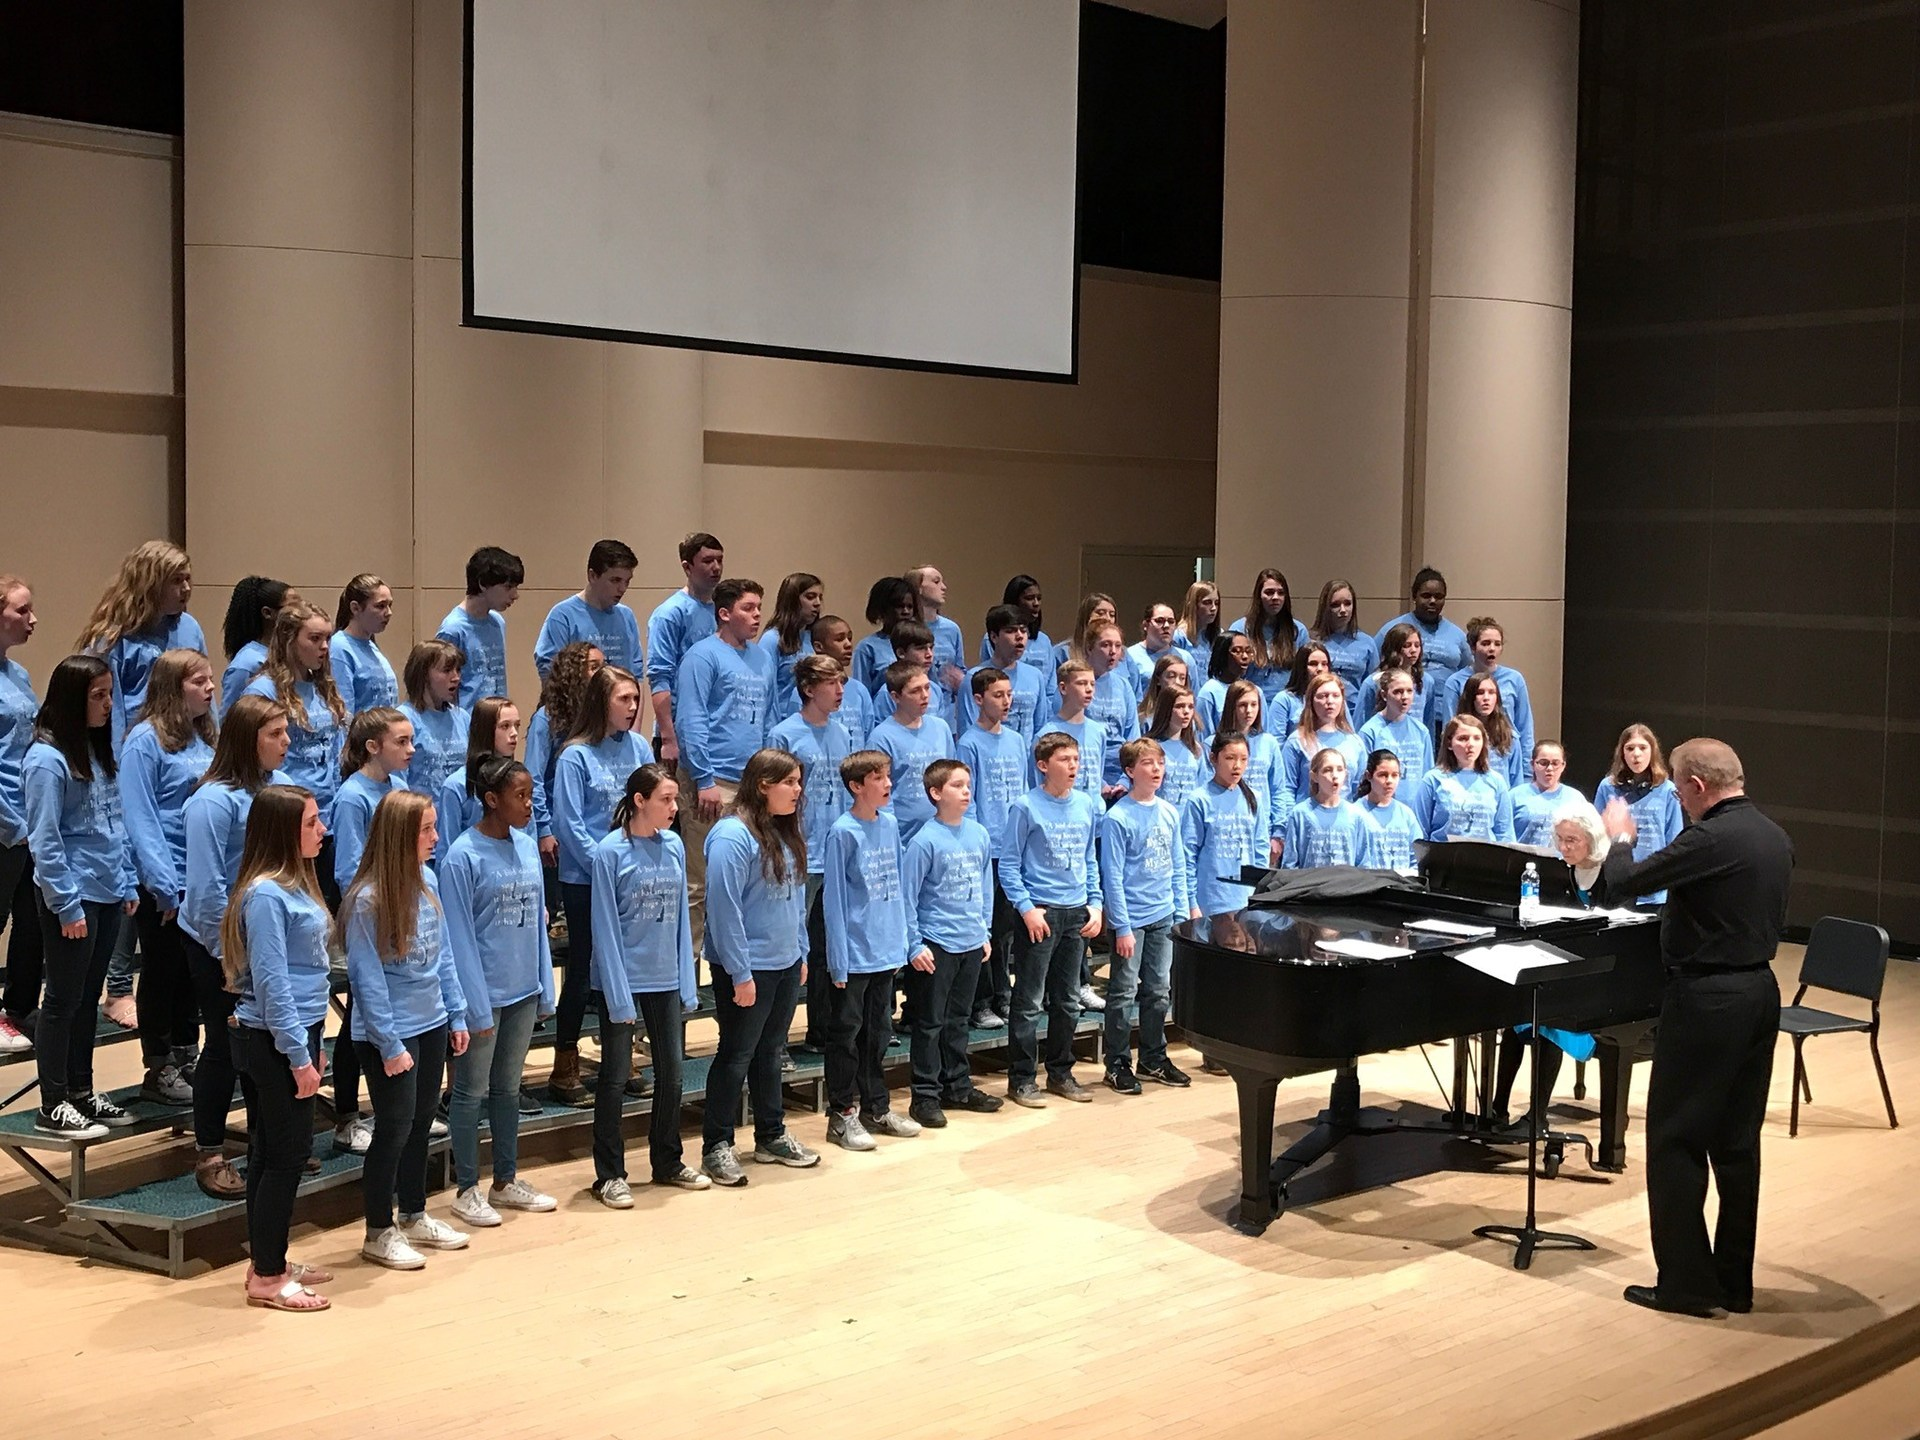 Anderson University Choral Workshop